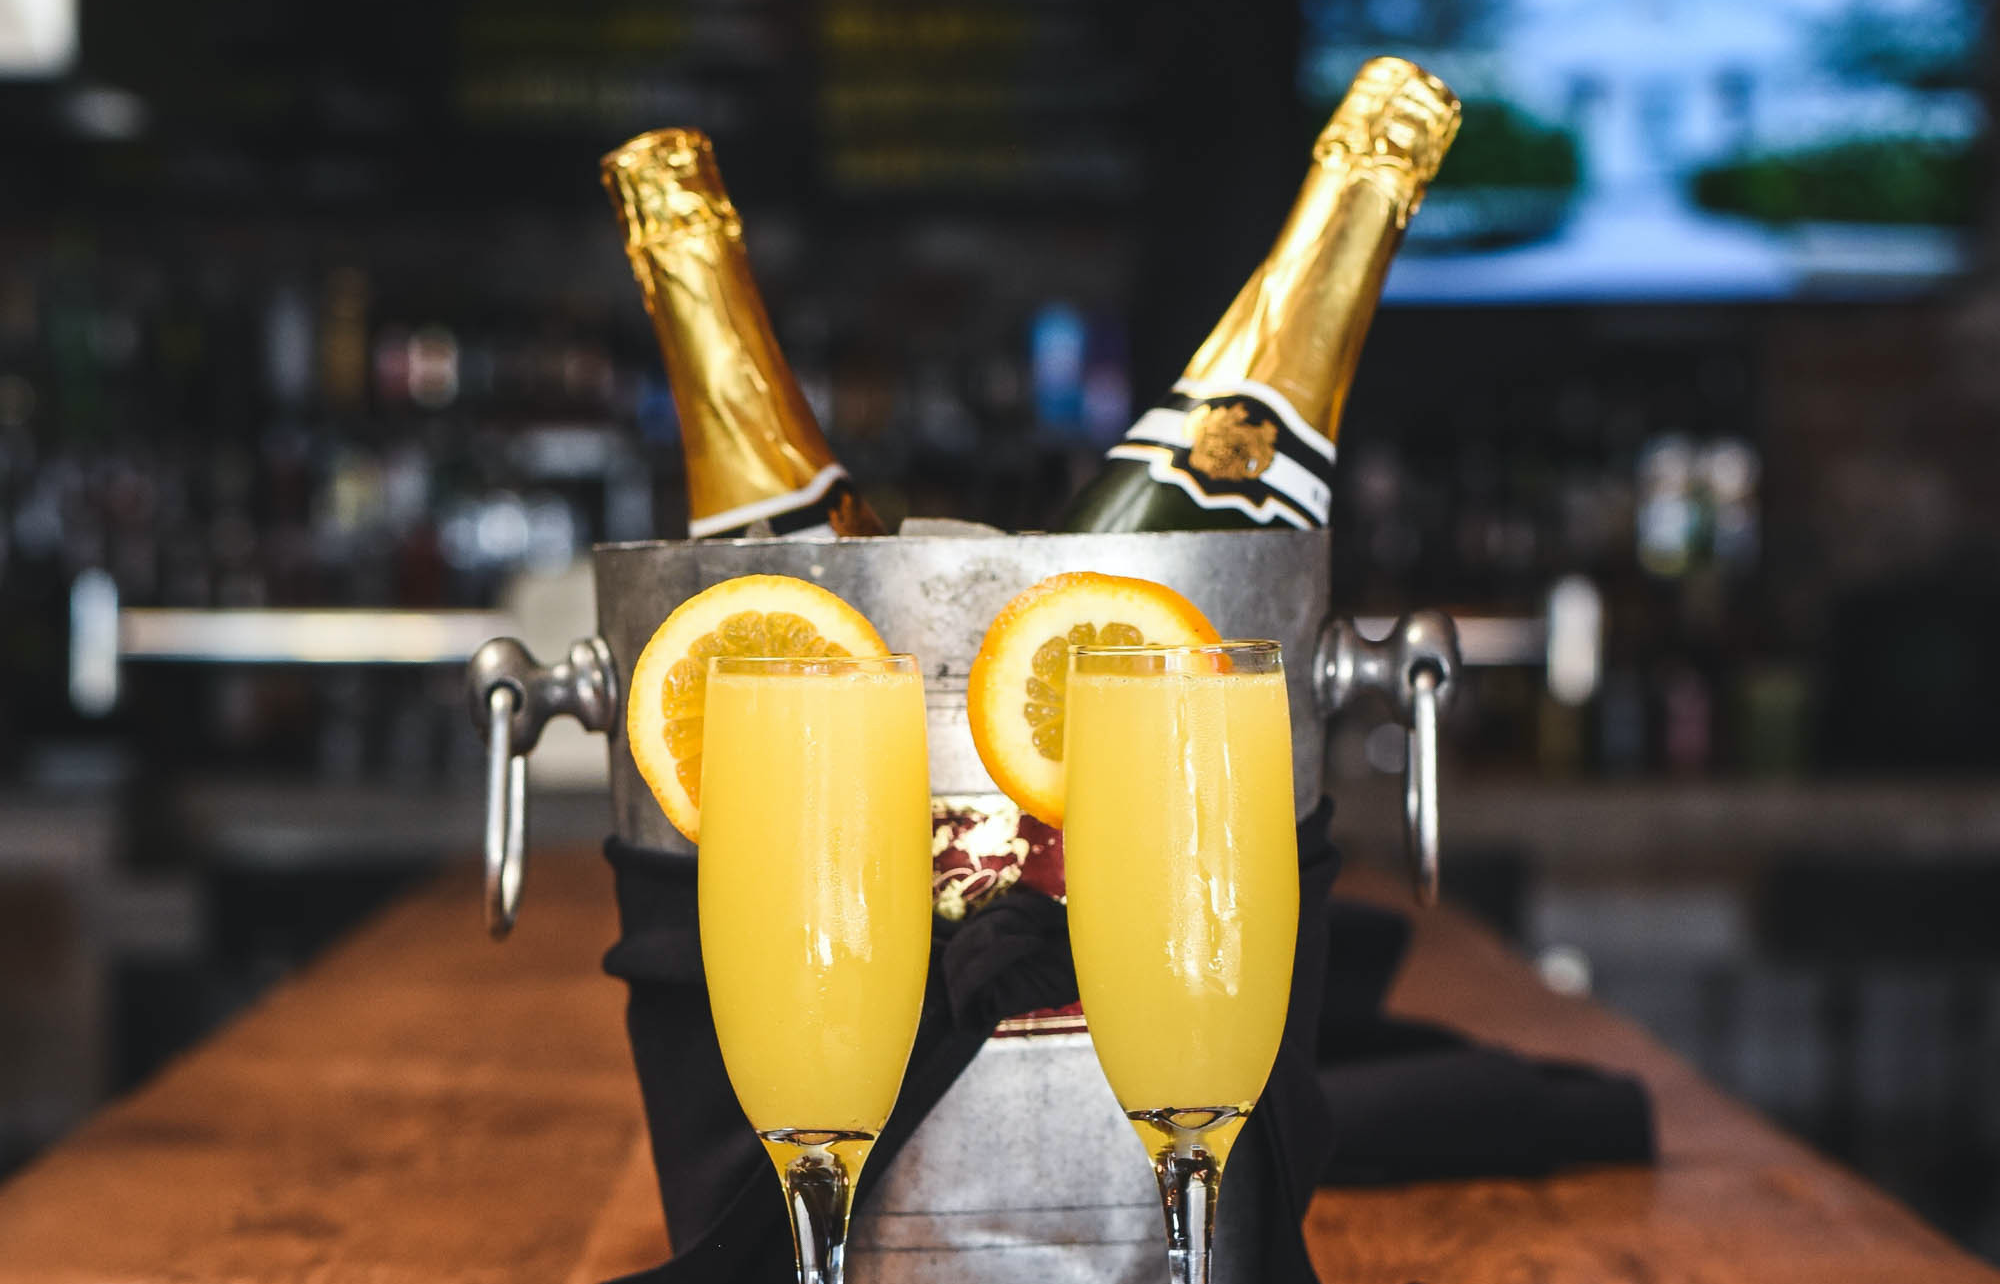 Two champagne bottles in a icy chiller flanked by mimosas with orange wedges.